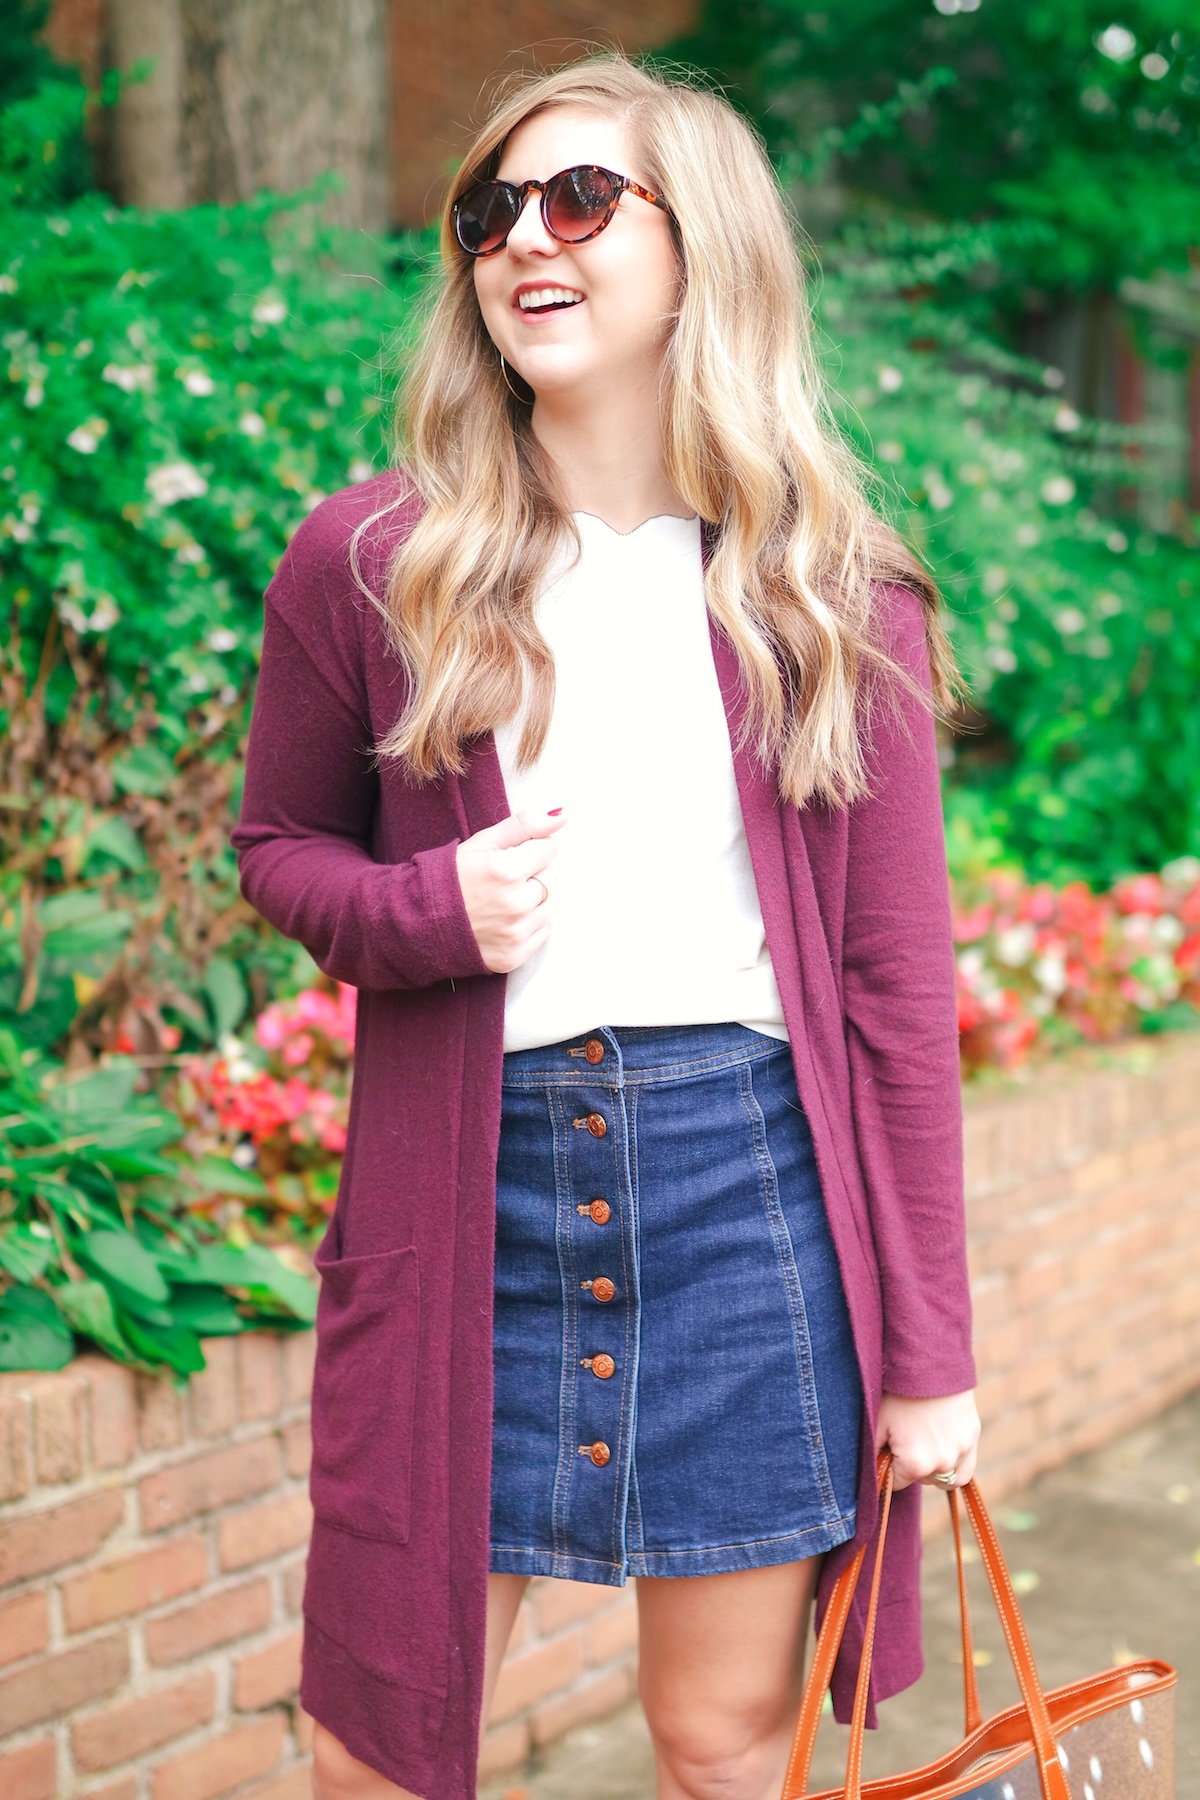 How To Style A Long Cardigan With A Mini Skirt